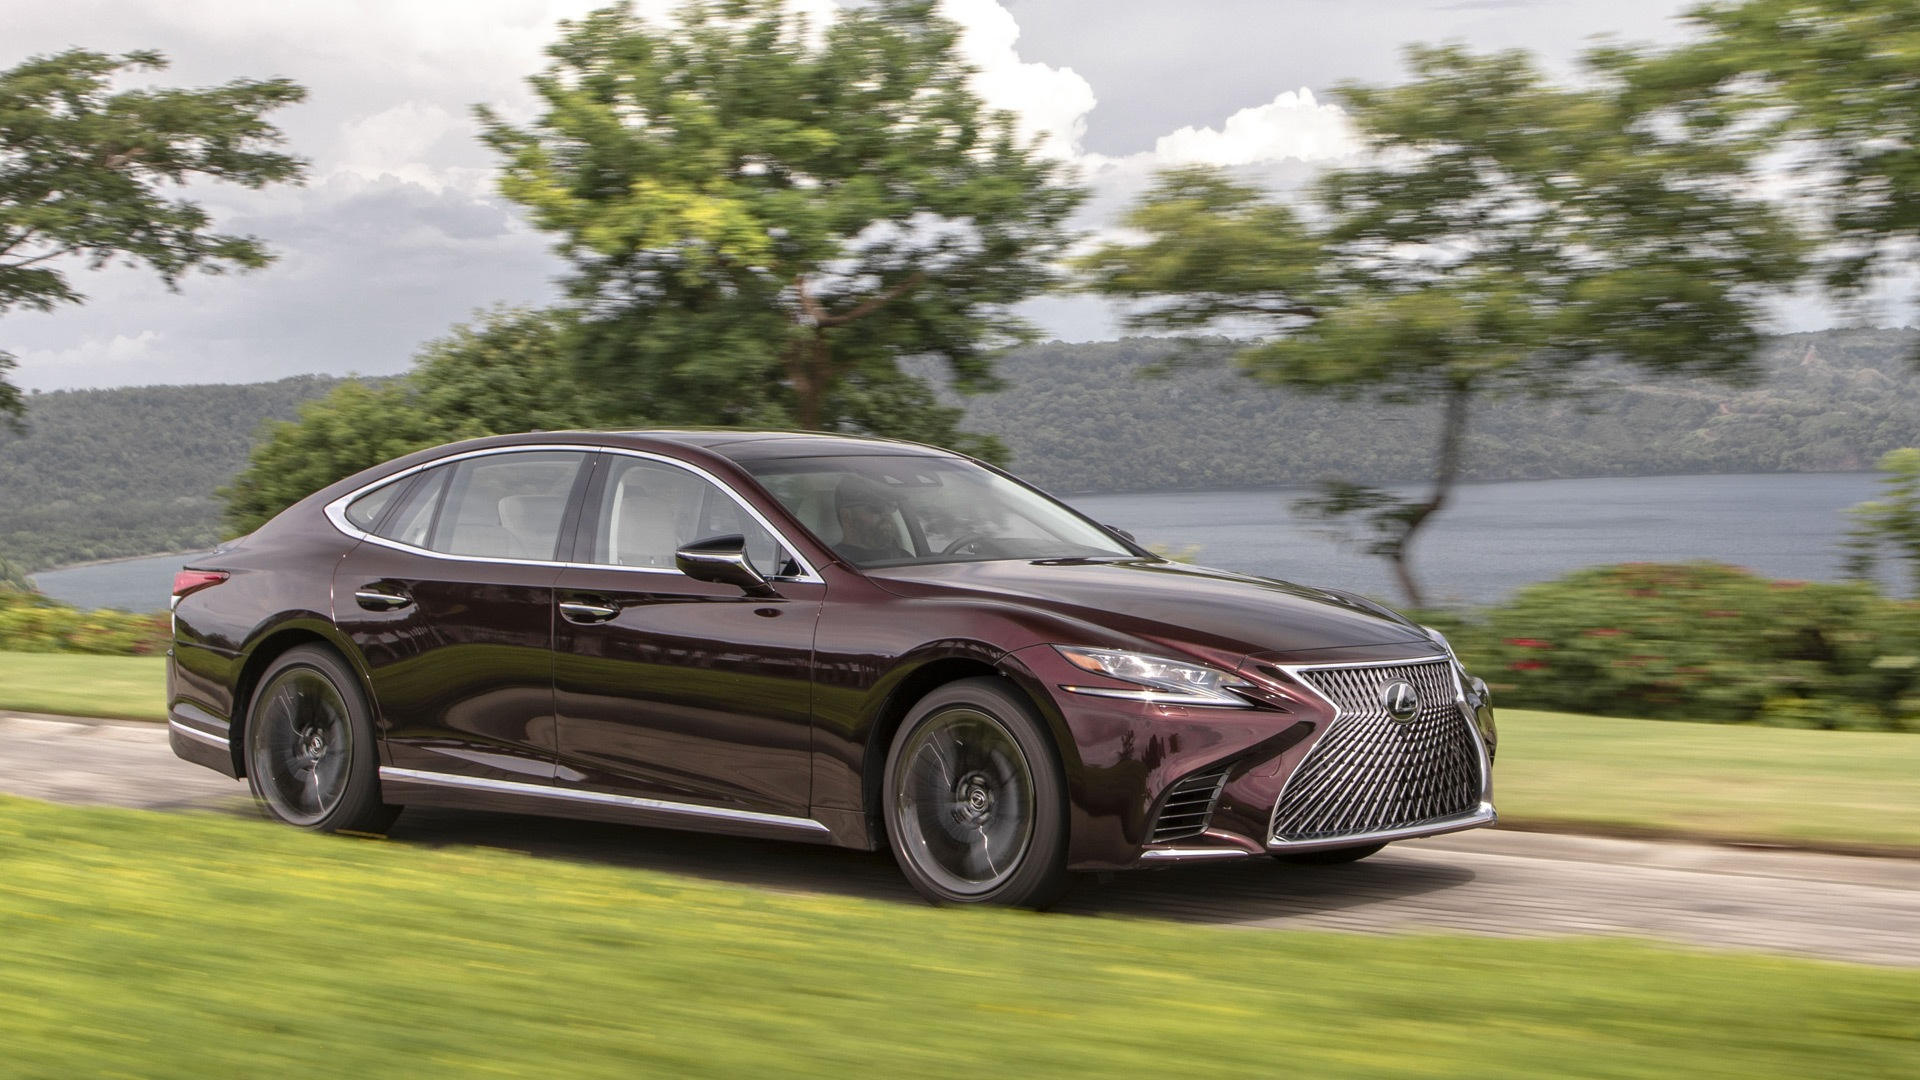 61 All New Lexus Is 2020 Interior for Lexus Is 2020